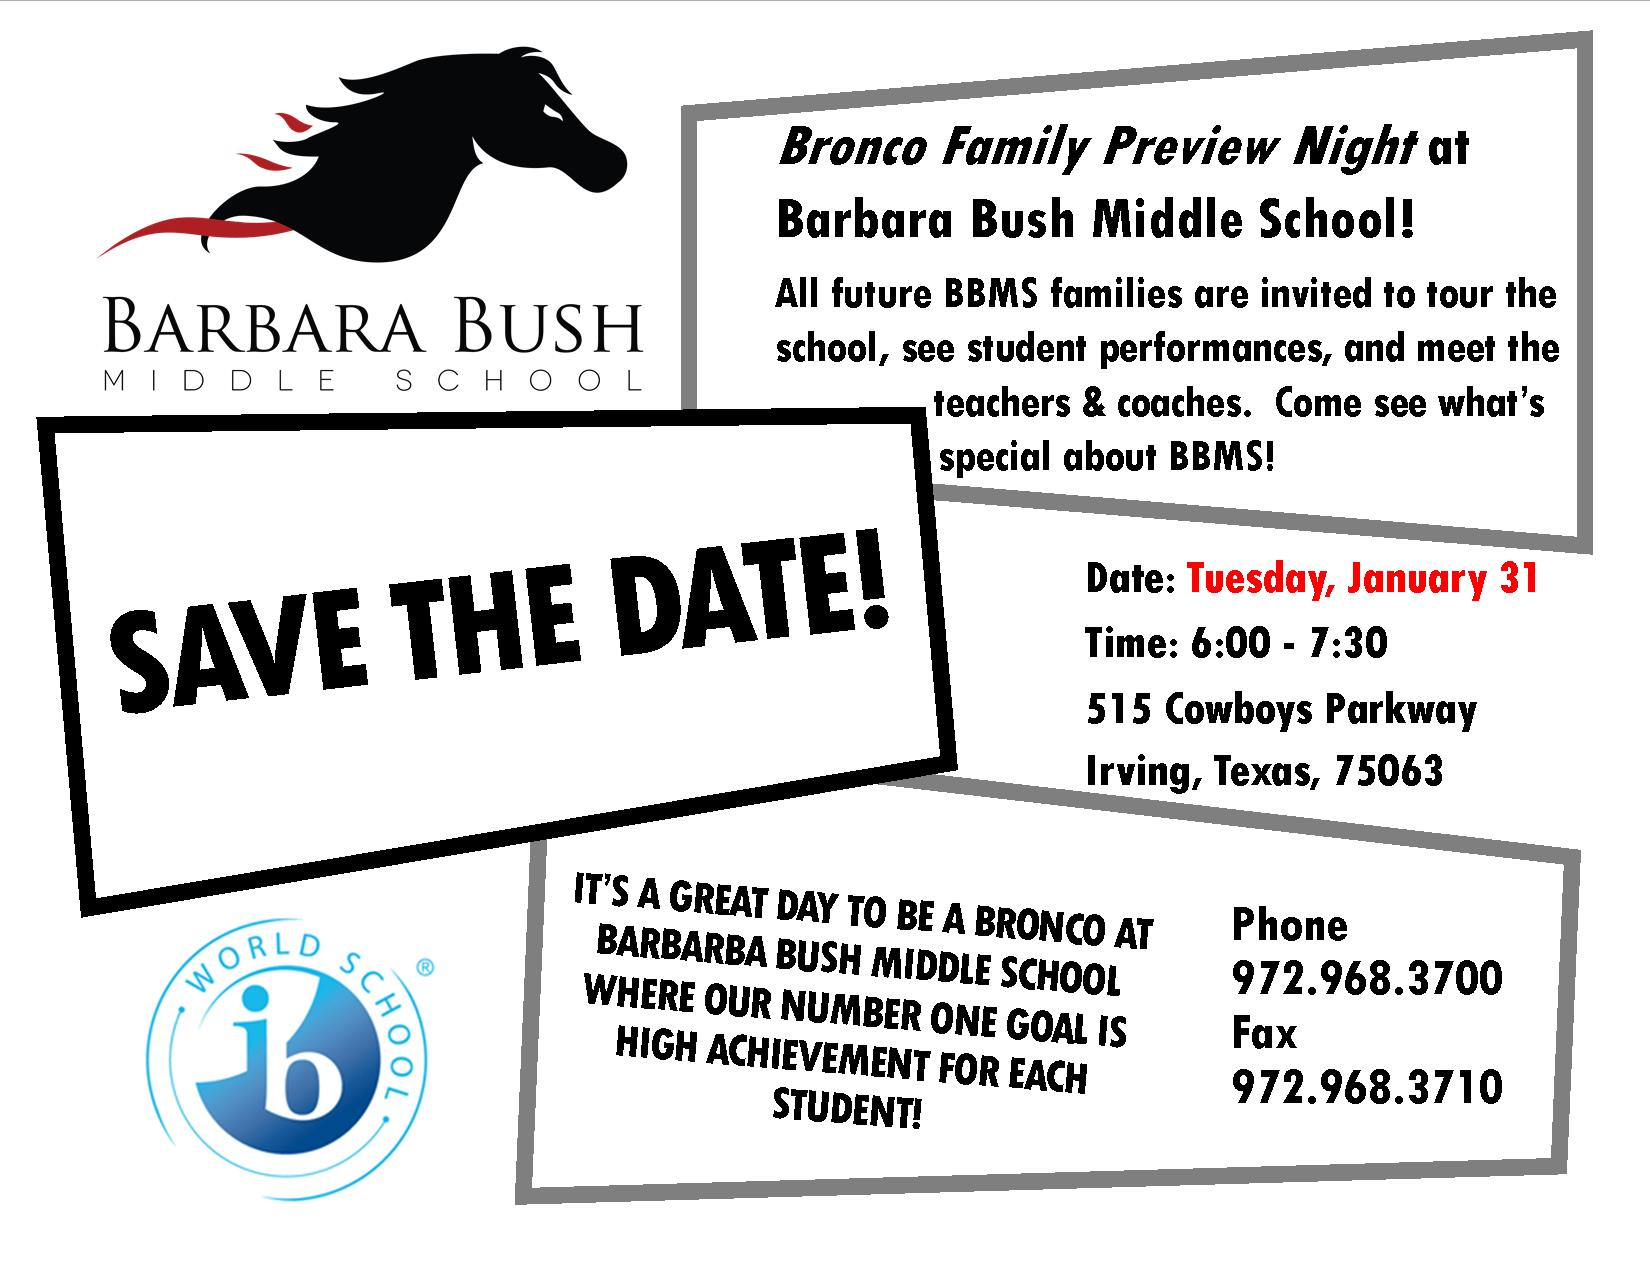 Bronco Family Preview Night at Barbara Bush Middle School! All future BBMS families are invited to tour the school, see student performances, and meet the teachers & coaches. Come see what's special about BBMS! IT'S A GREAT DAY TO BE A BRONCO AT BARBARBA BUSH MIDDLE SCHOOL WHERE OUR NUMBER ONE GOAL IS HIGH ACHIEVEMENT FOR EACH STUDENT!